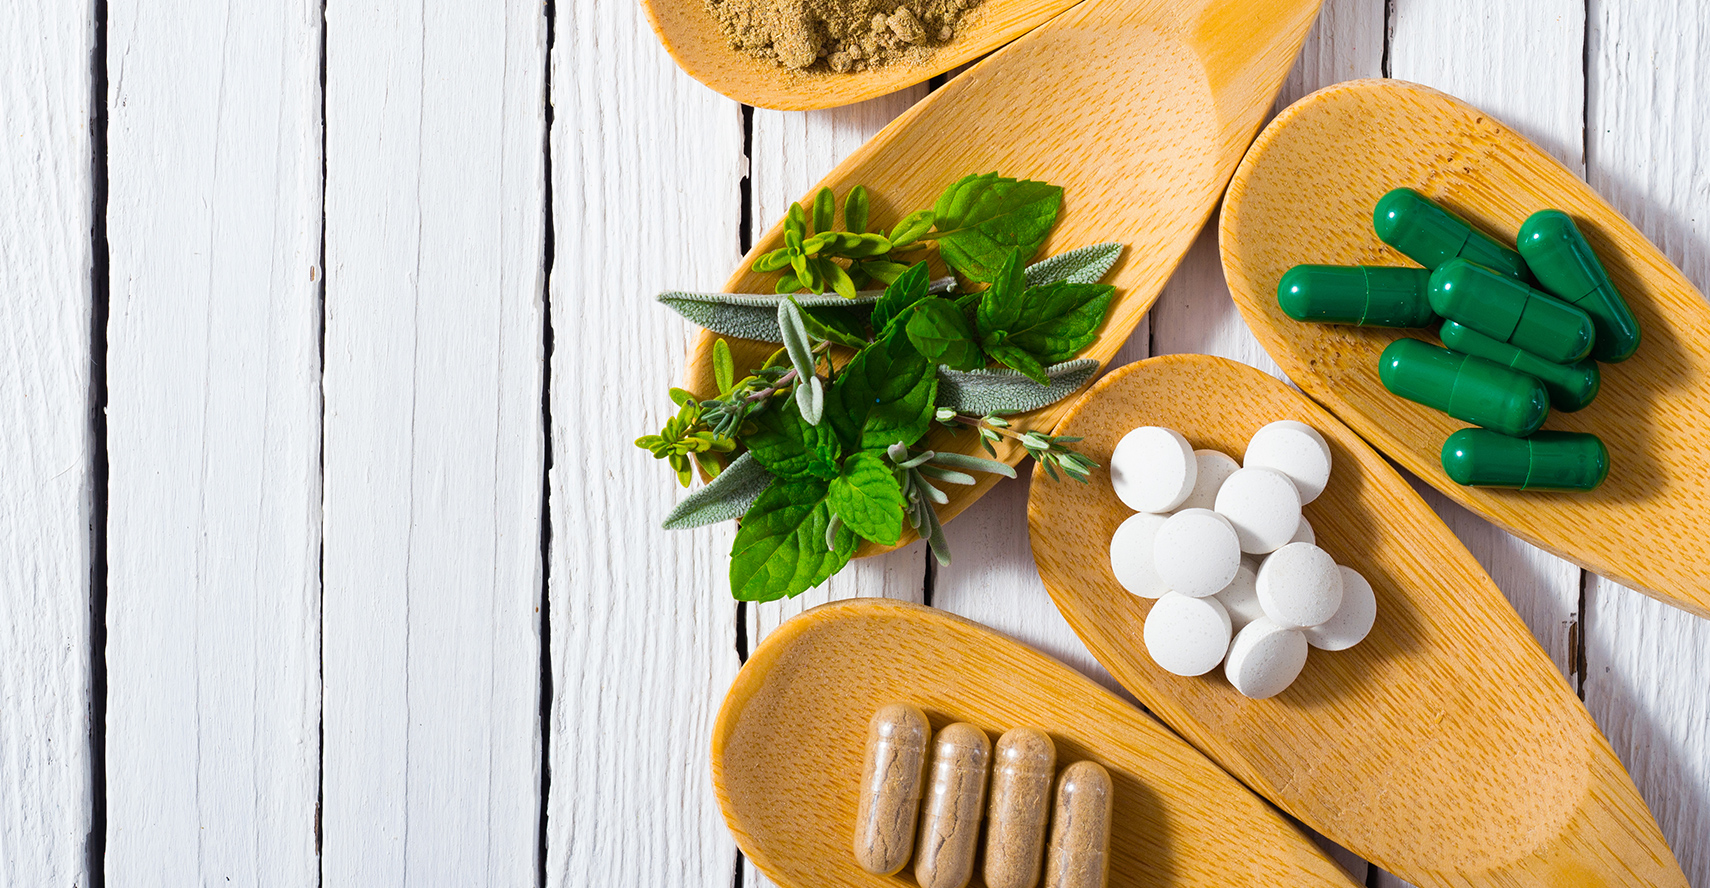 supplements to protect against coronavirus